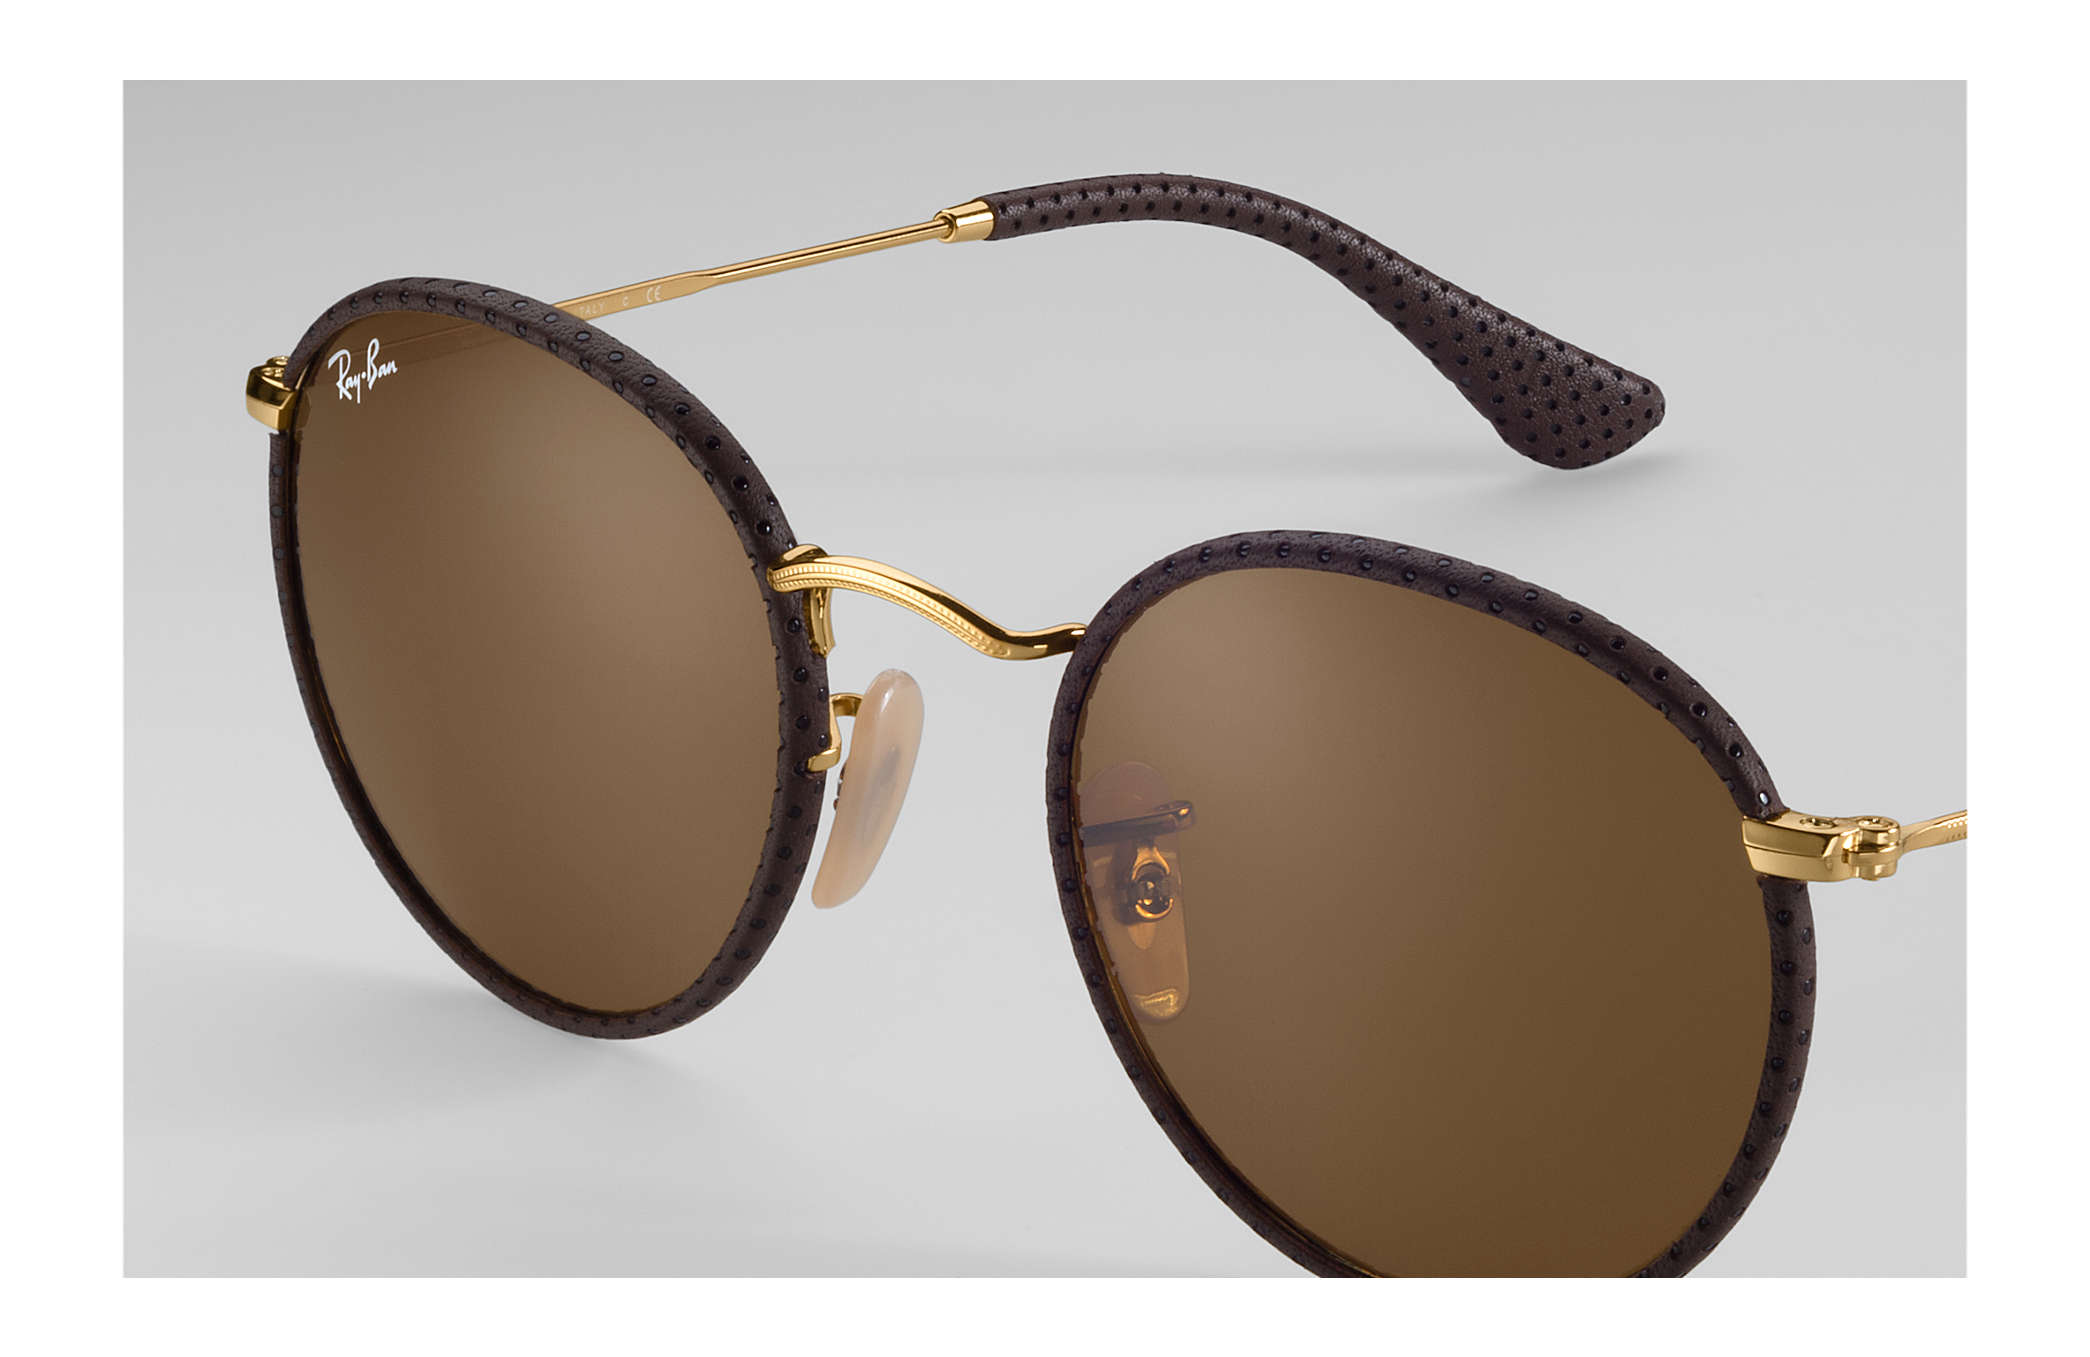 6c31dadf6de81b Ray-Ban Round Craft RB3475Q Brown - Metal - Brown Brillenglazen ...